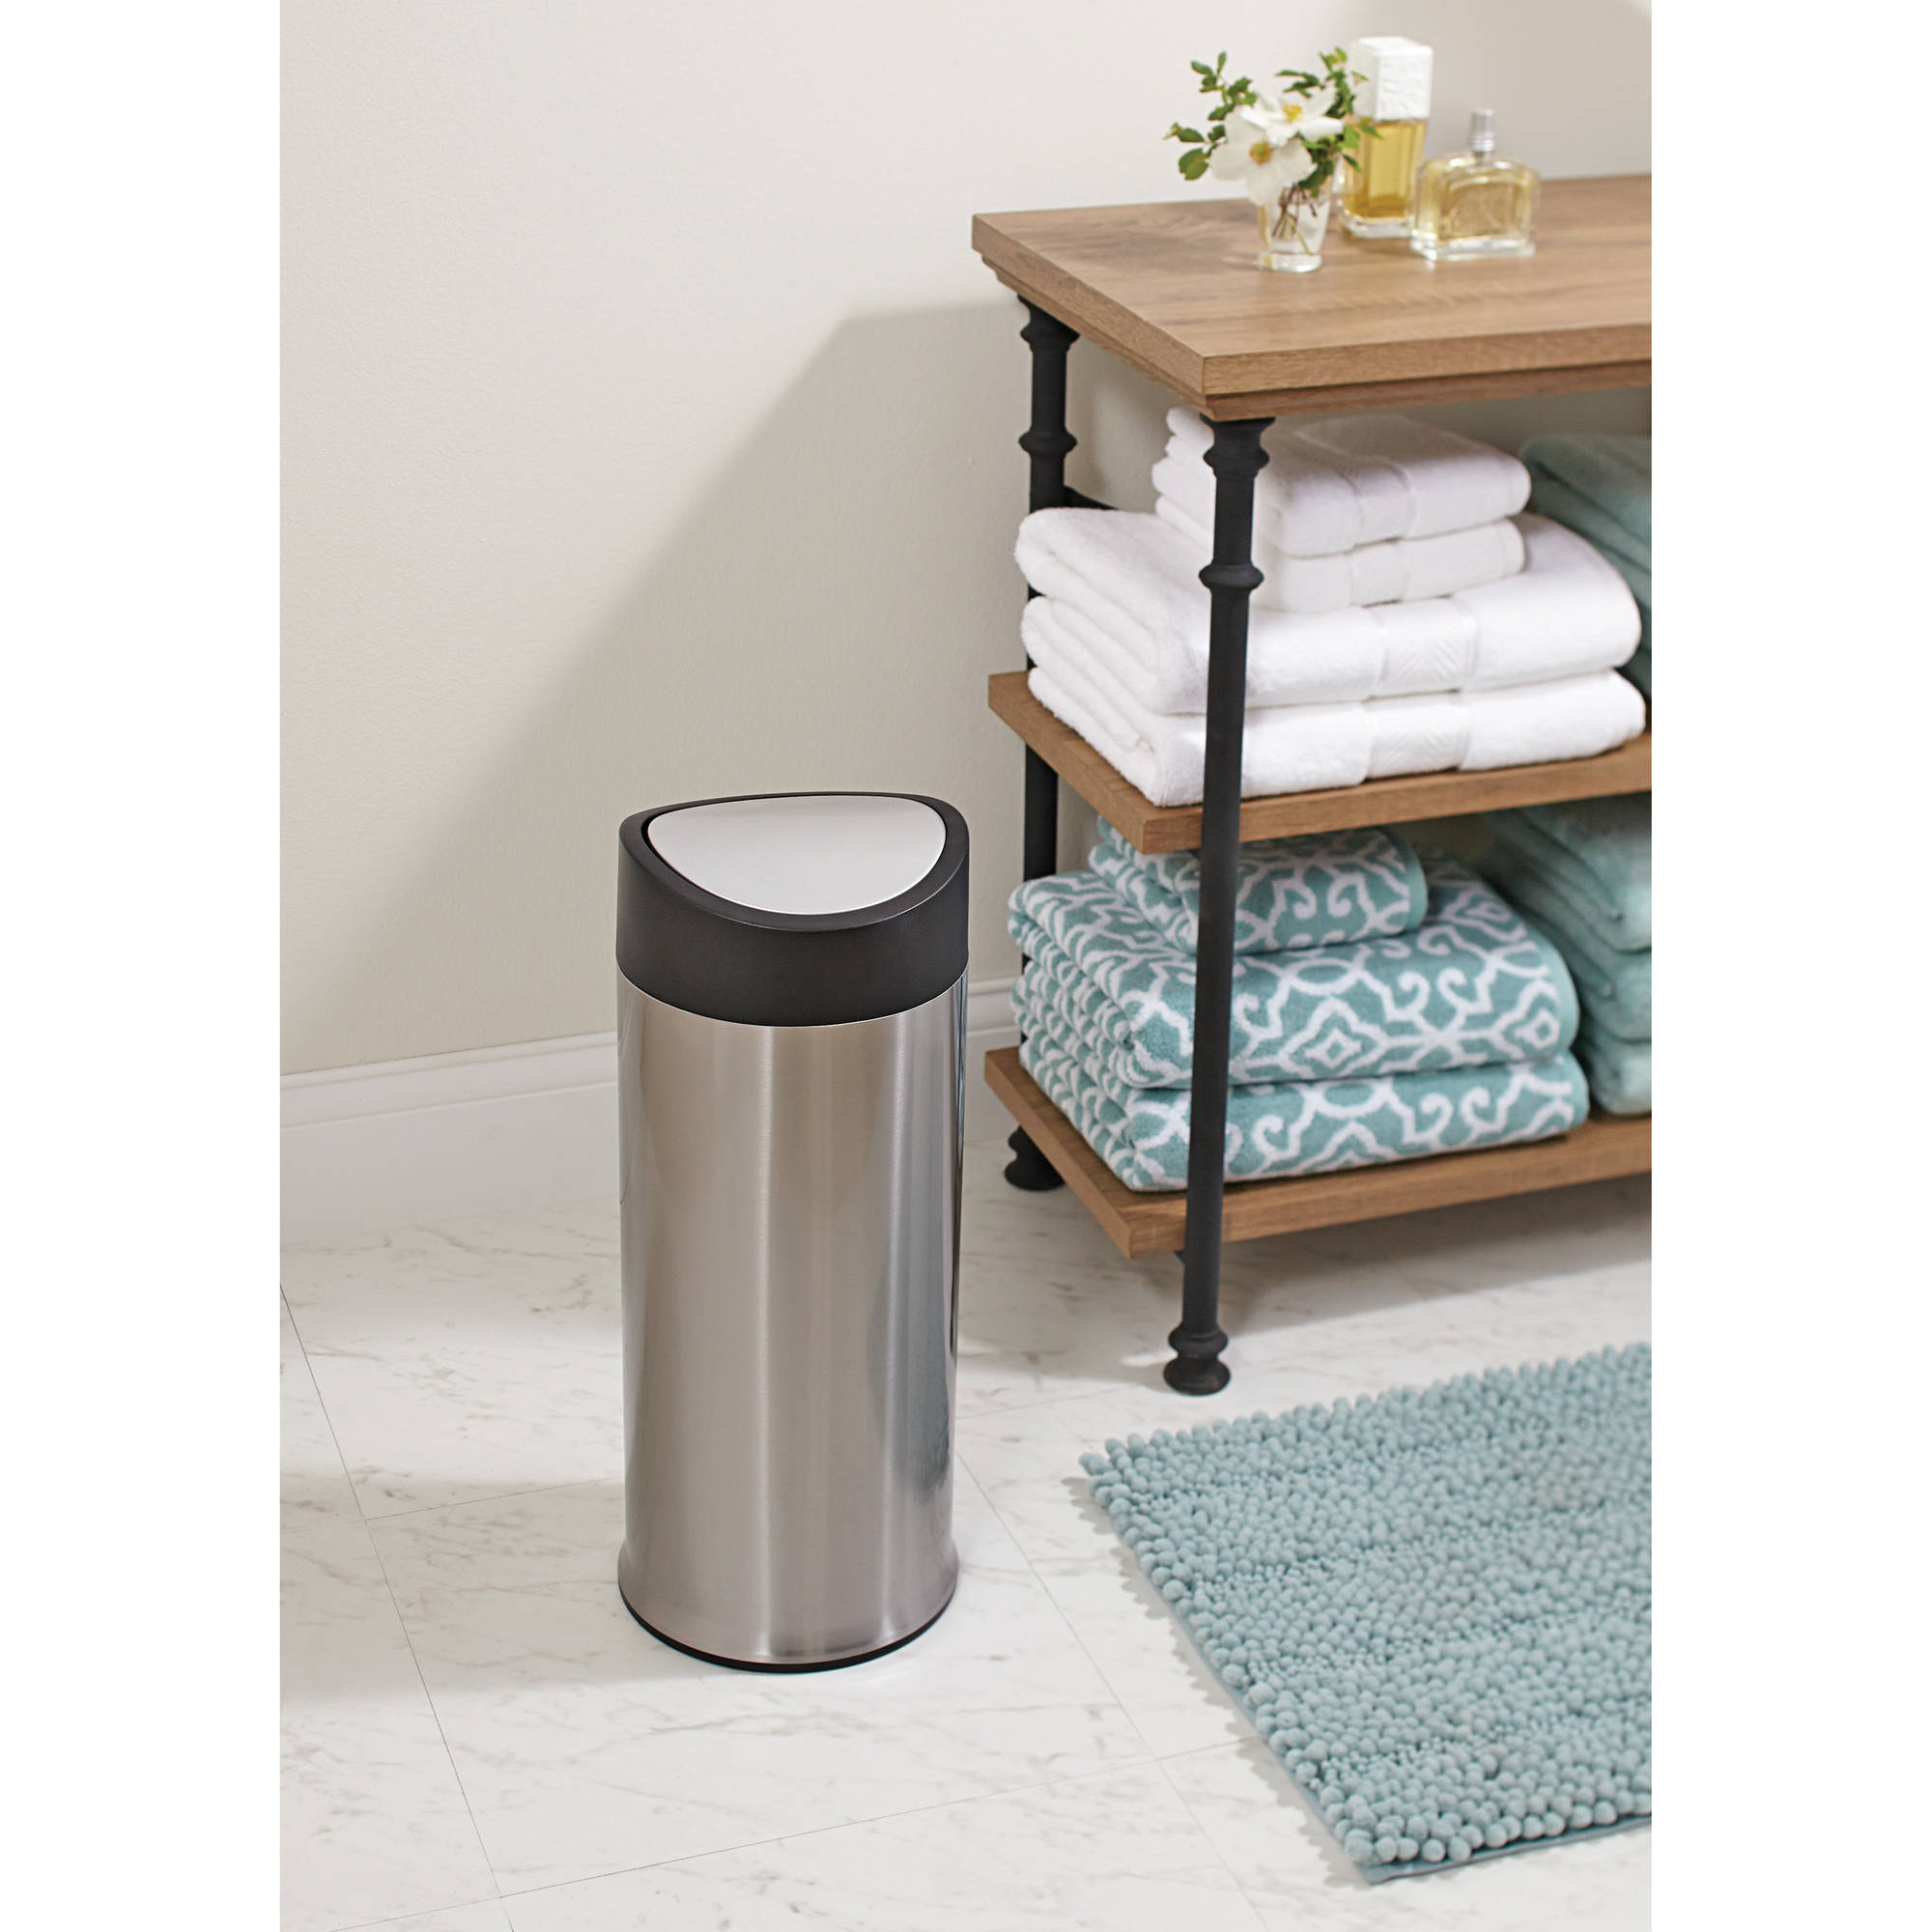 Better Homes U0026 Garden 3.1 Gallon Stainless Steel Round Slide On Swing Top  Waste Can   Walmart.com